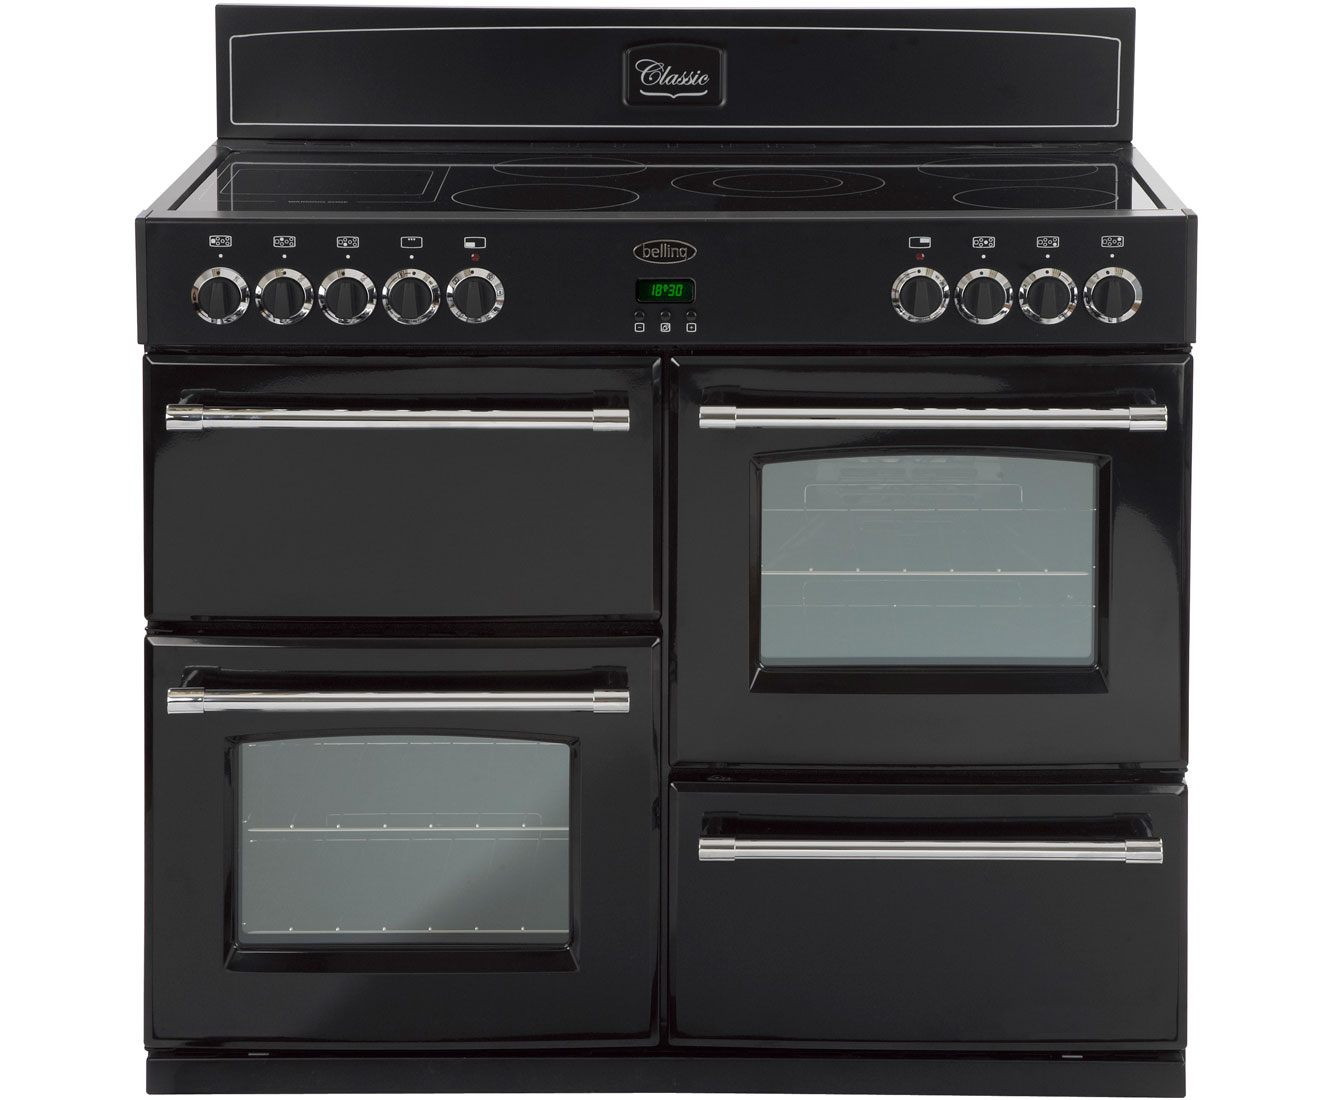 Belling Classic1100E 110cm Electric Range Cooker with Ceramic Hob - Black